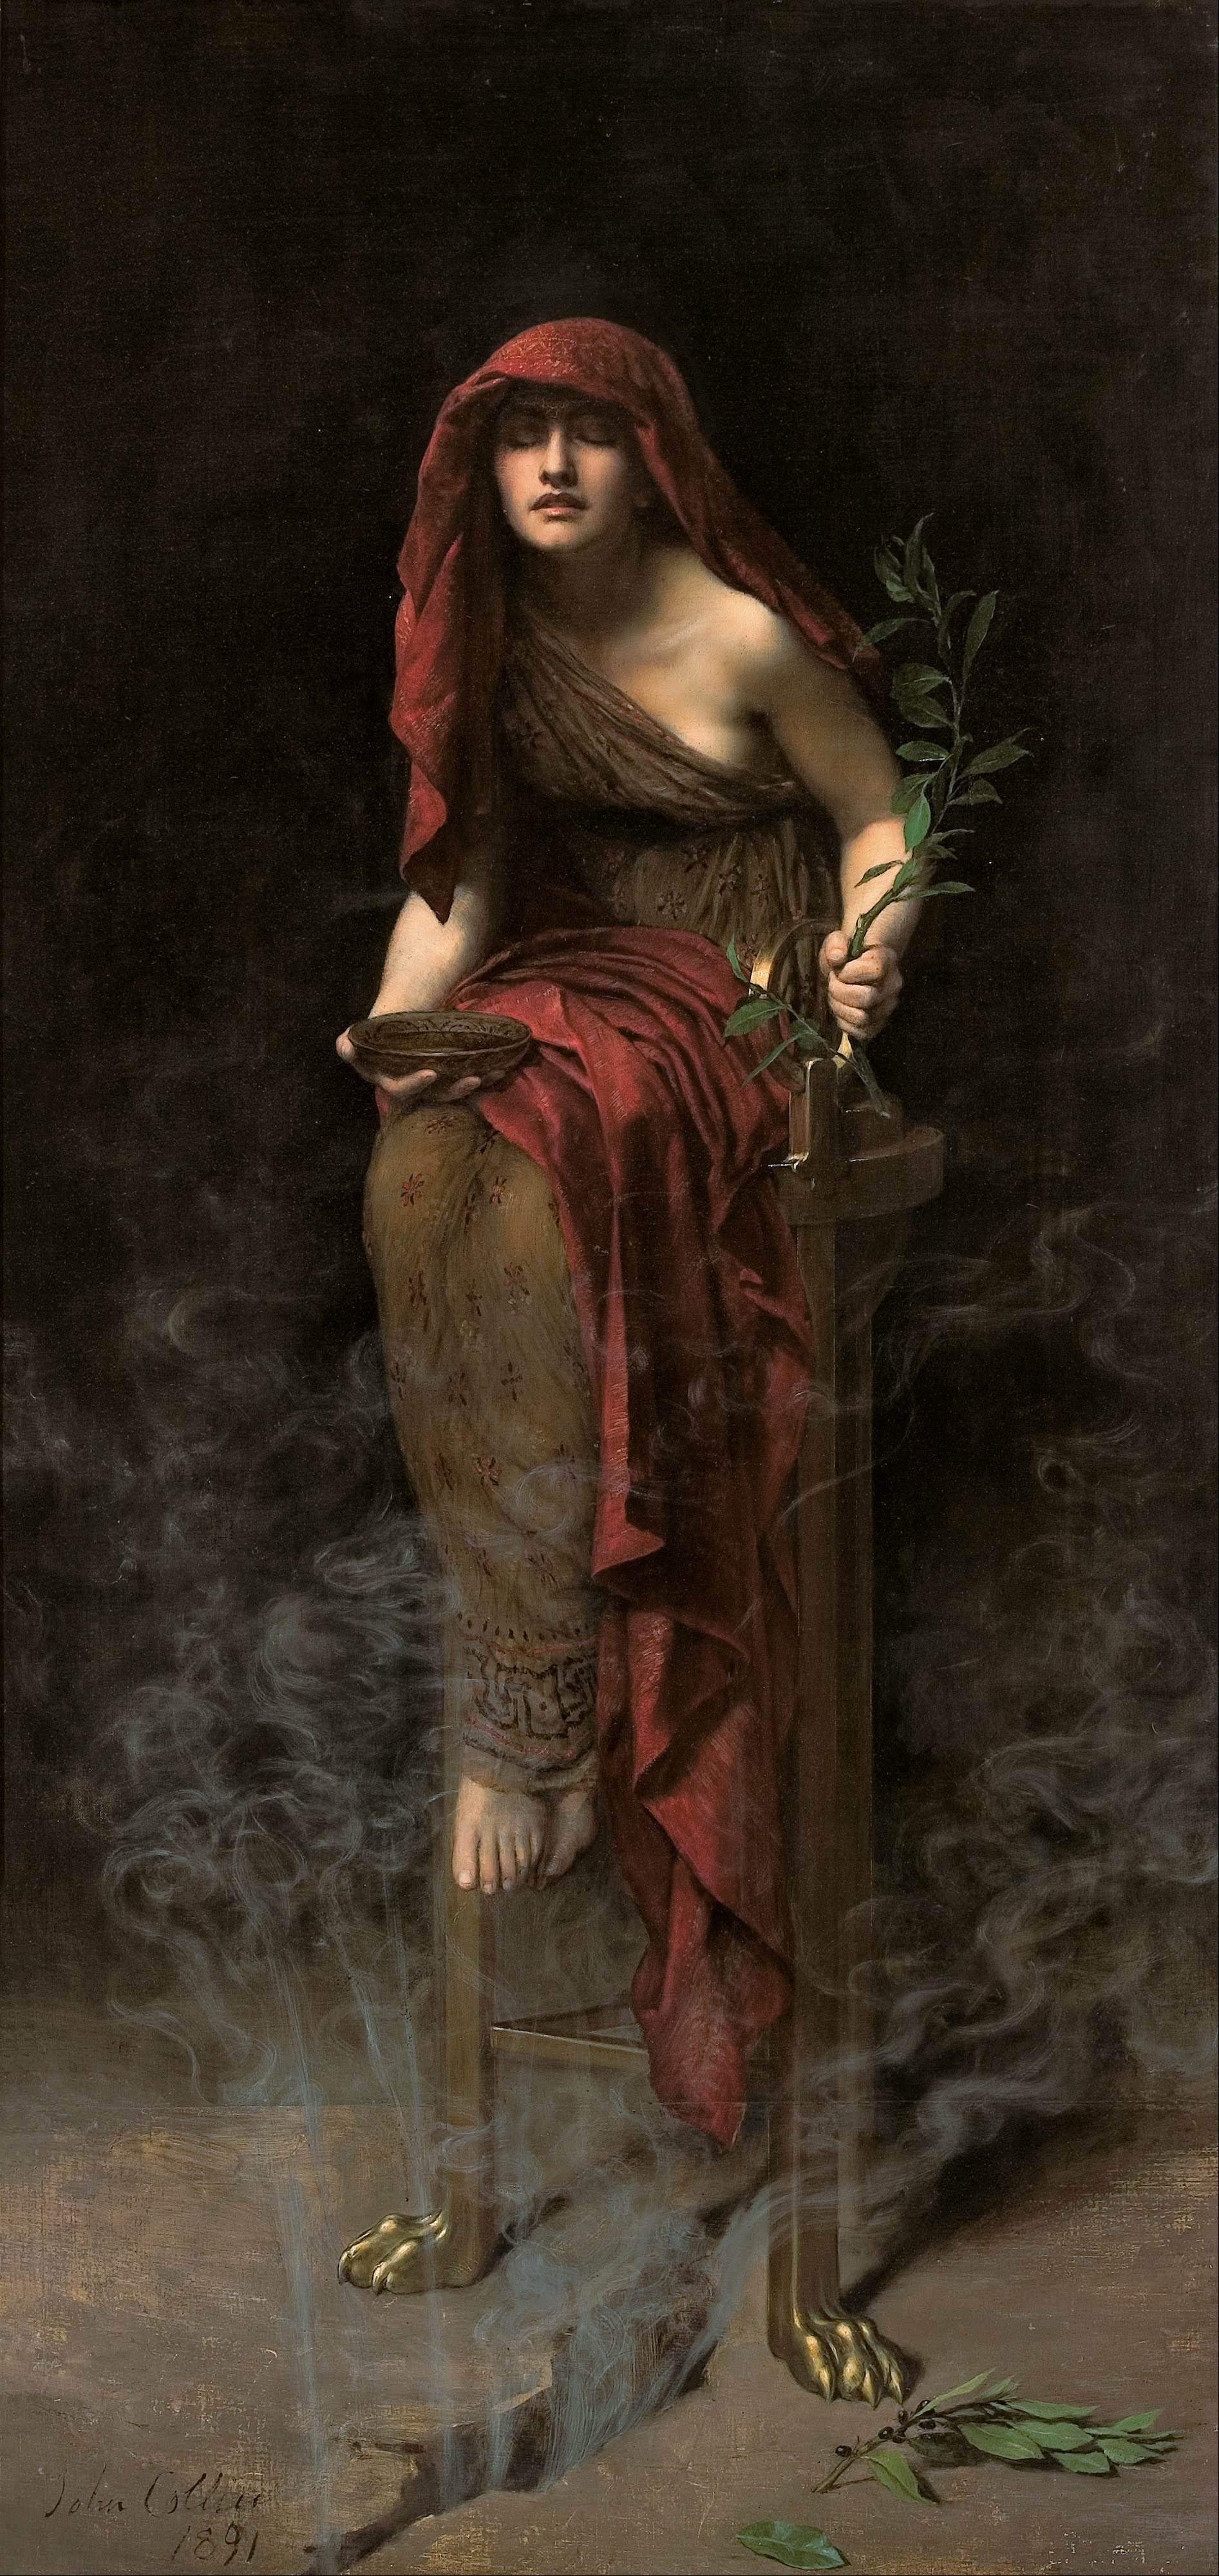 Priestess of Delphi, painting by John Collier